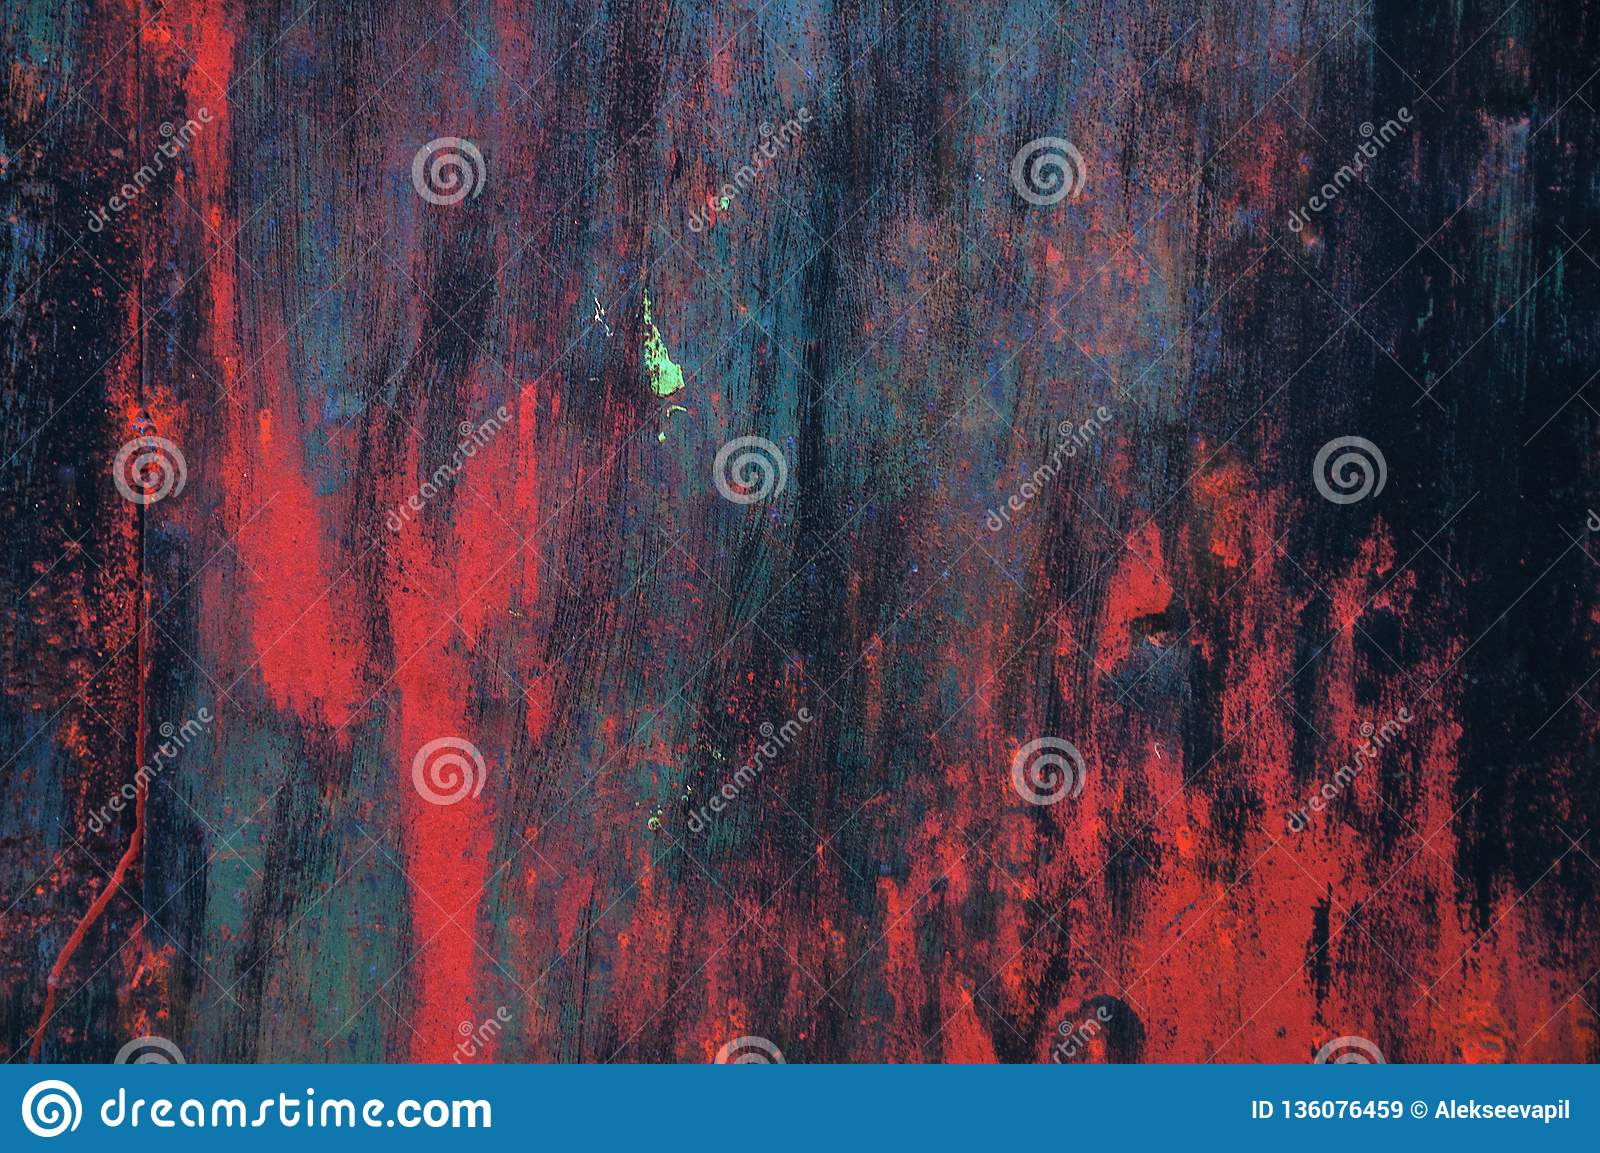 Multicolored texture abstract brush strokes. Dark red background brush strokes